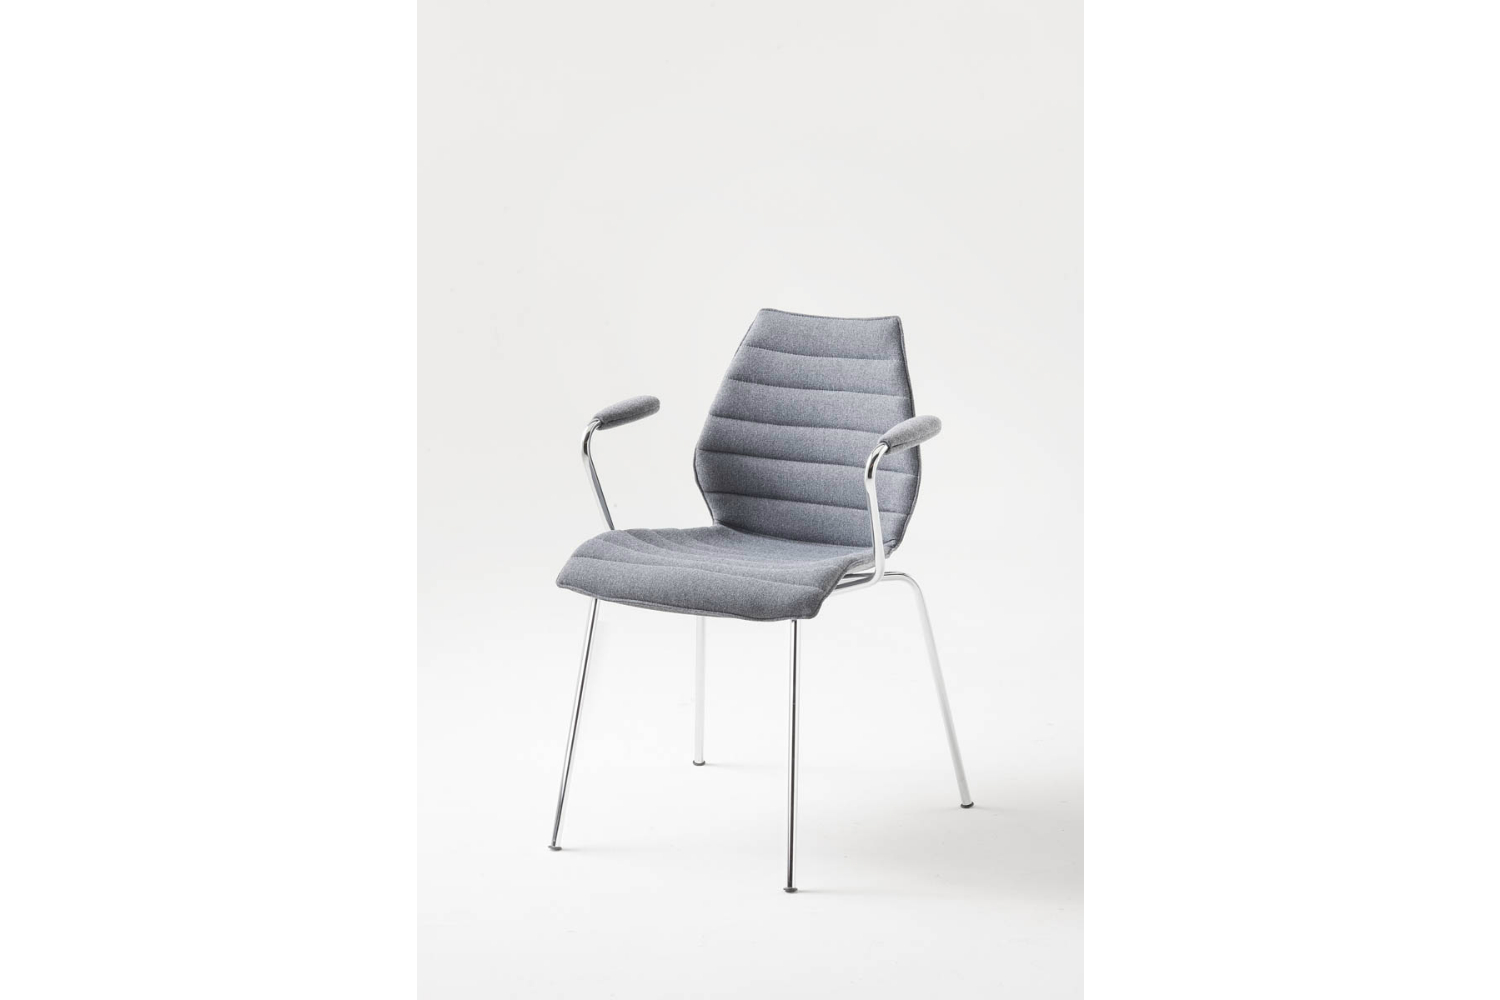 chair design research round comfy maui soft with arms tribute to vico magistretti for kartell space furniture